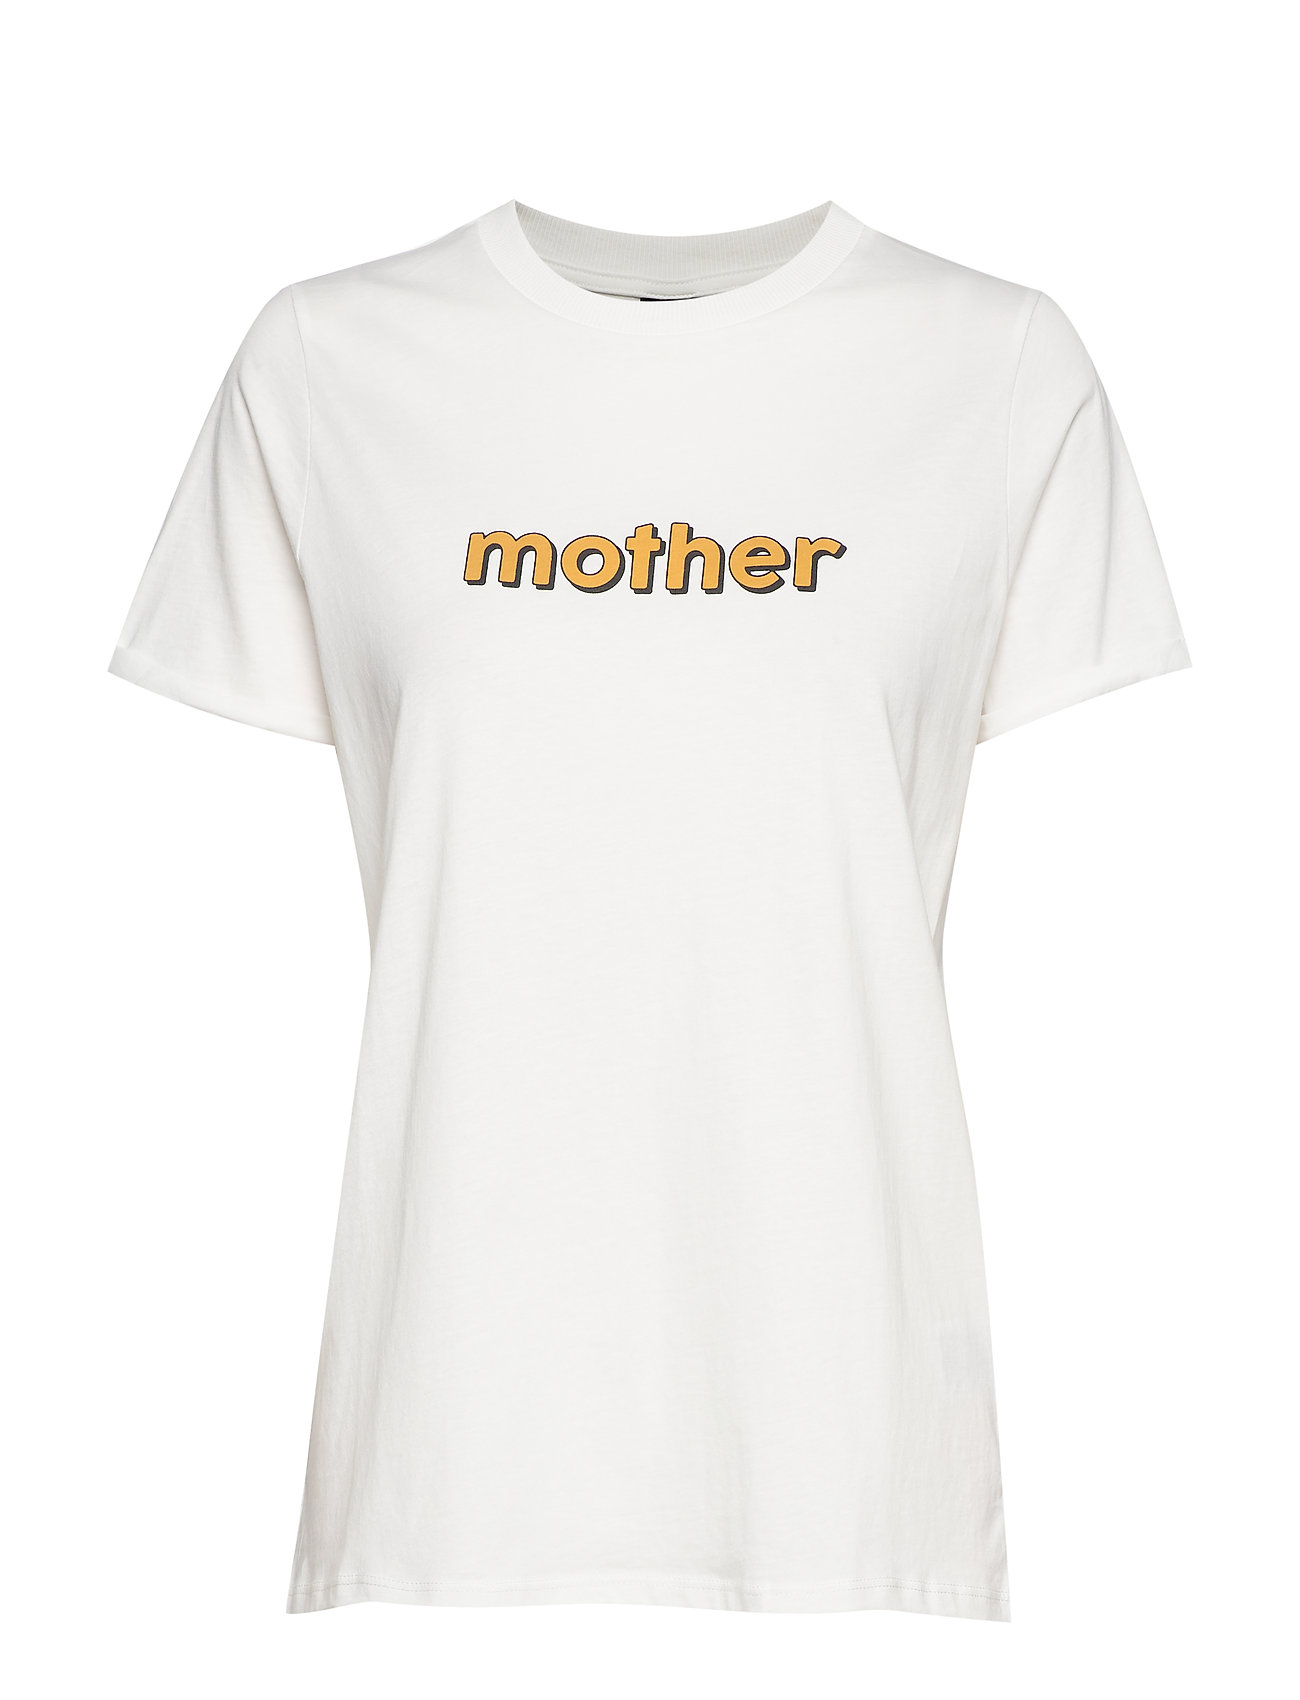 Gina Tricot Me tee - MOTHER/TEXT